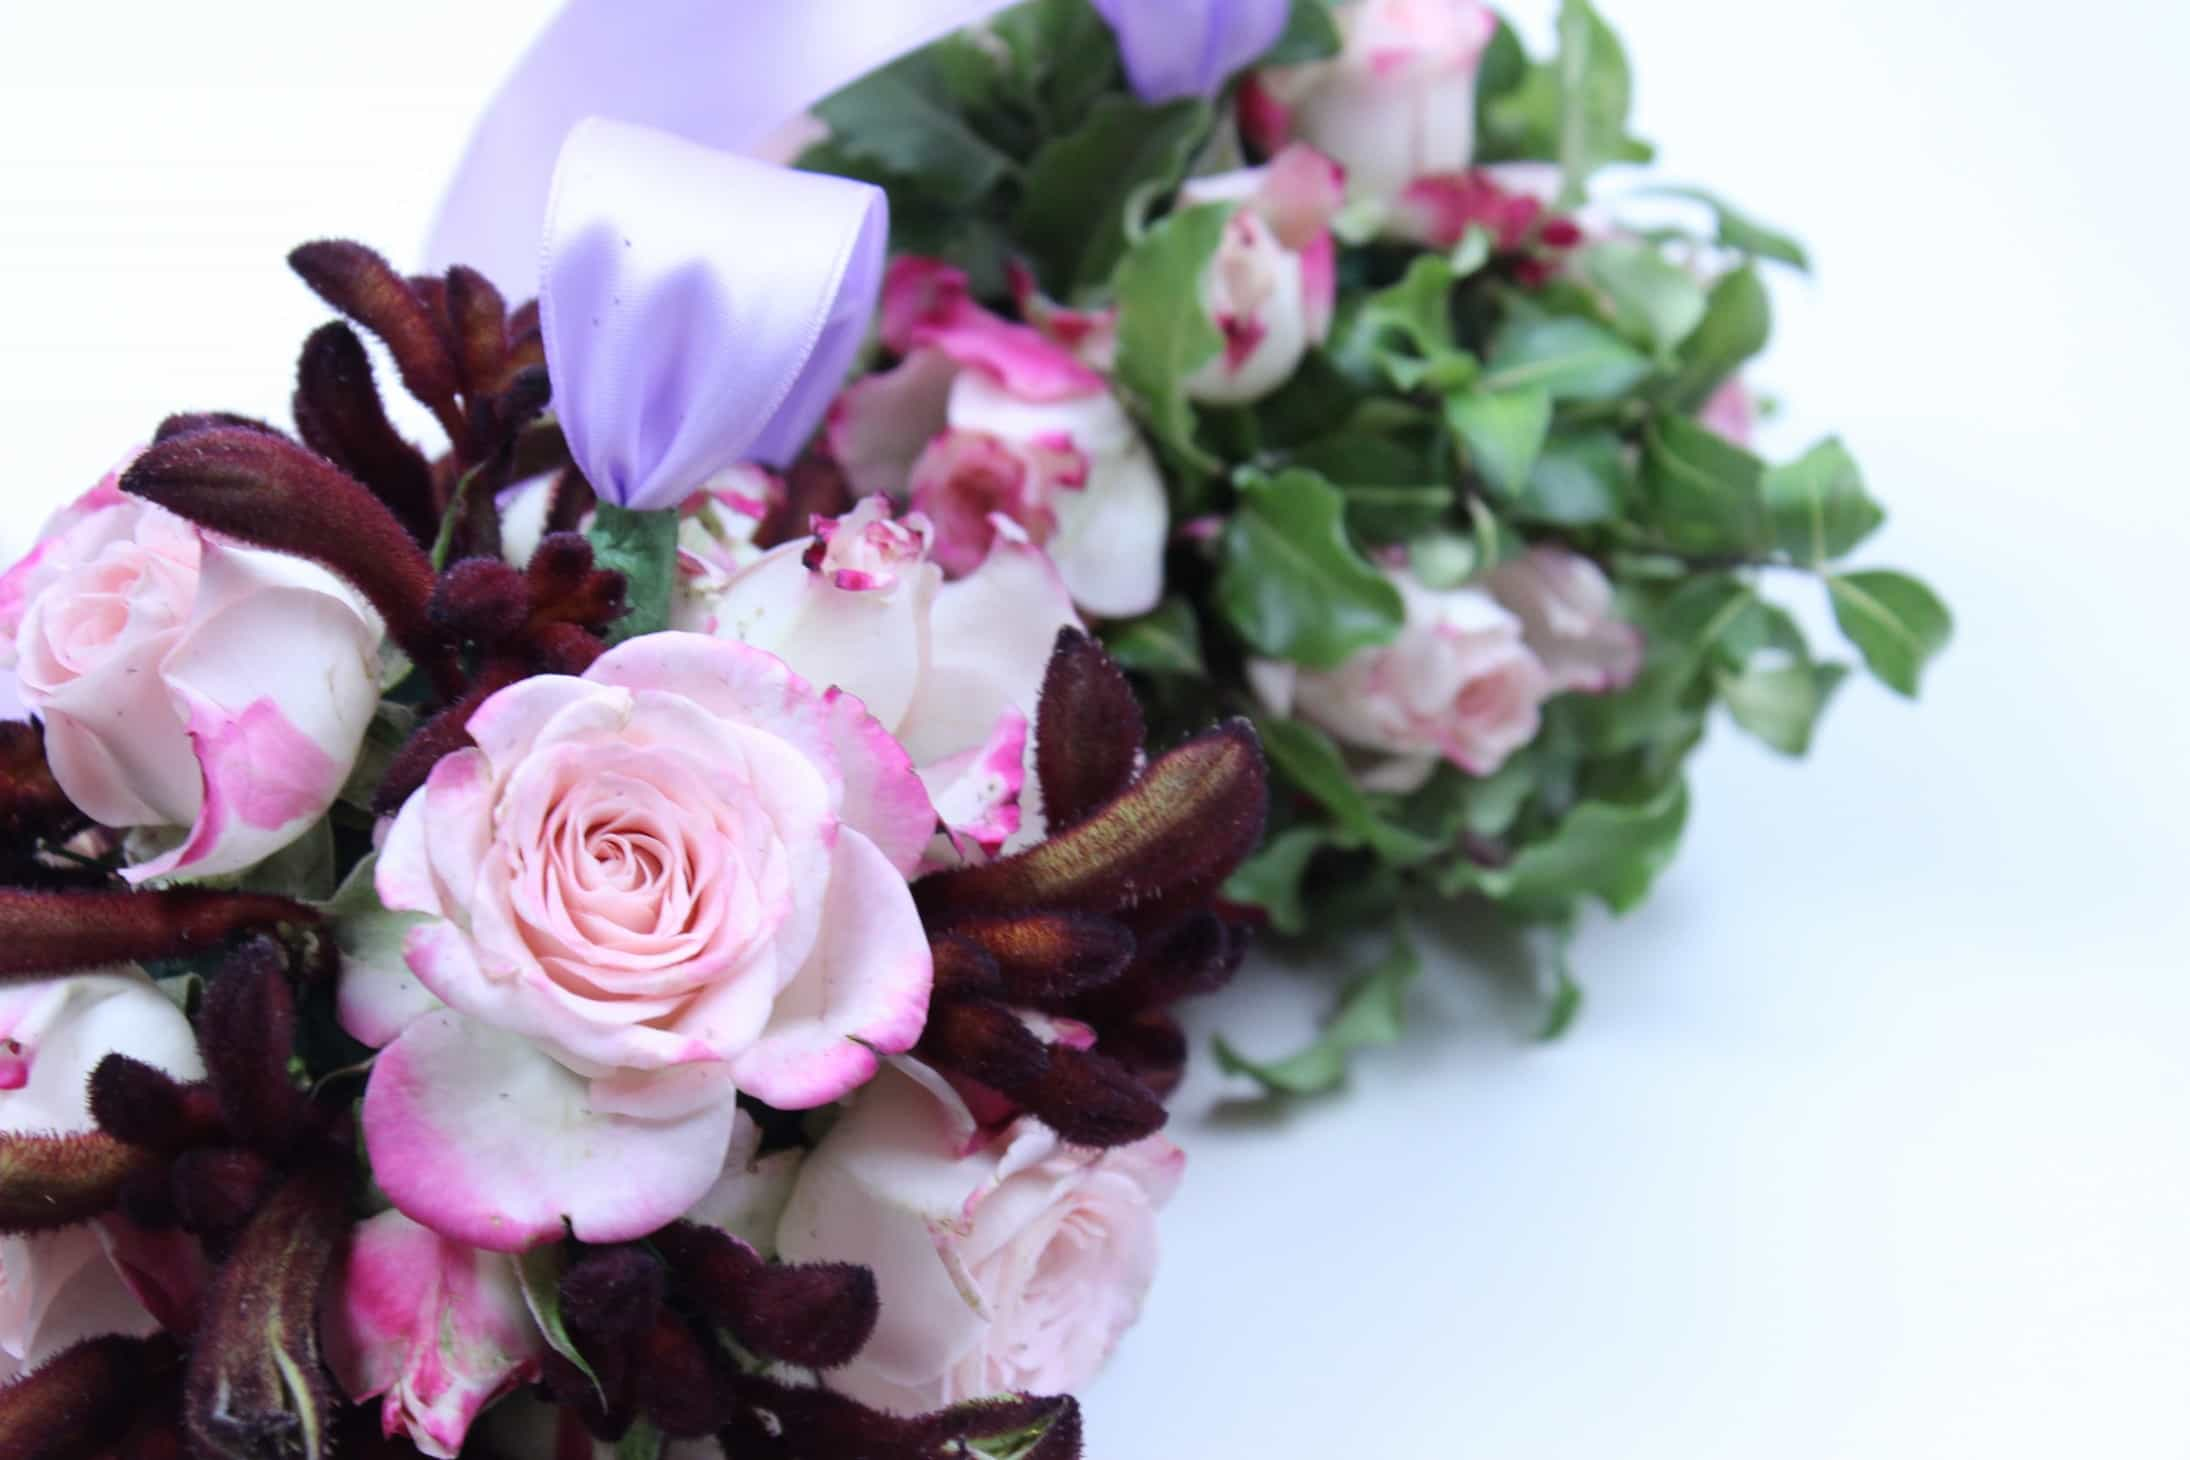 How To Make Flower Balls With Fresh Flowers The Smell Of Roses The